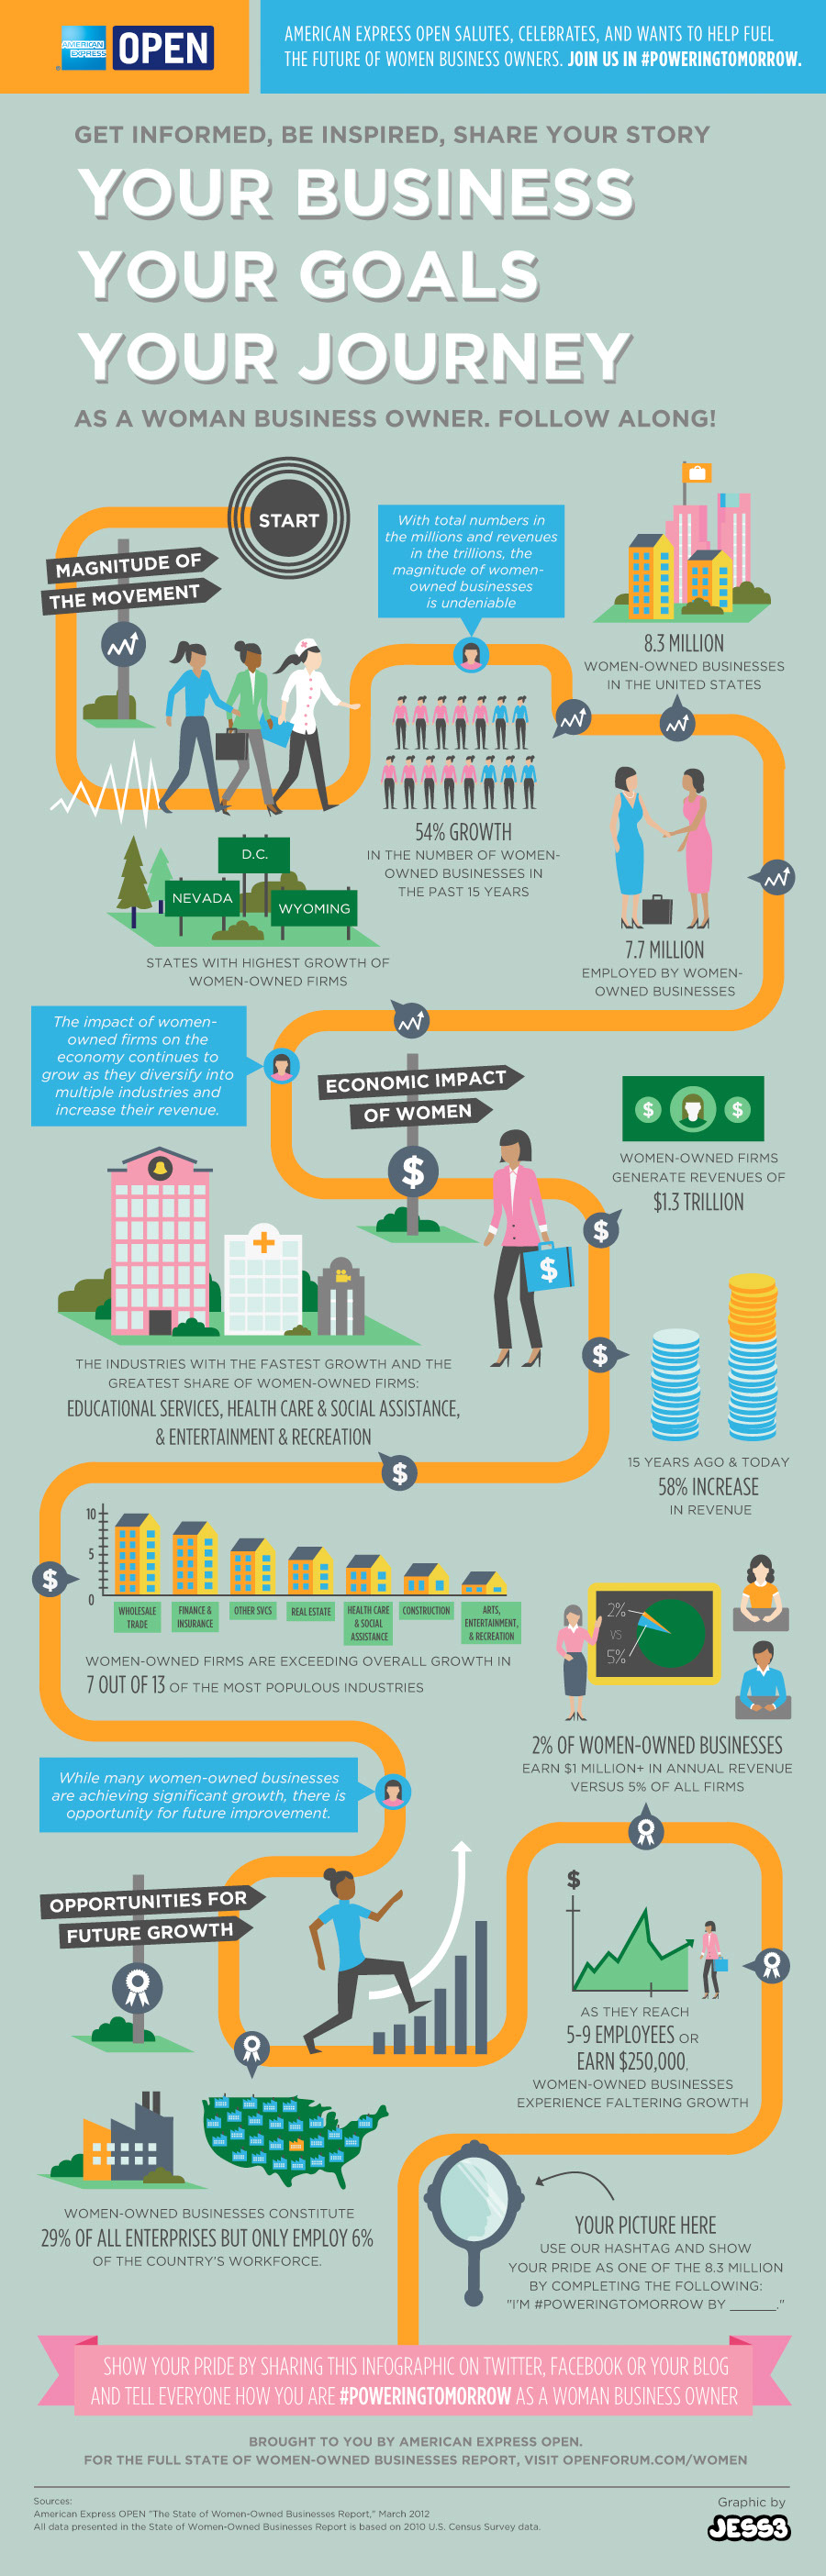 Women Business Owners-infographic